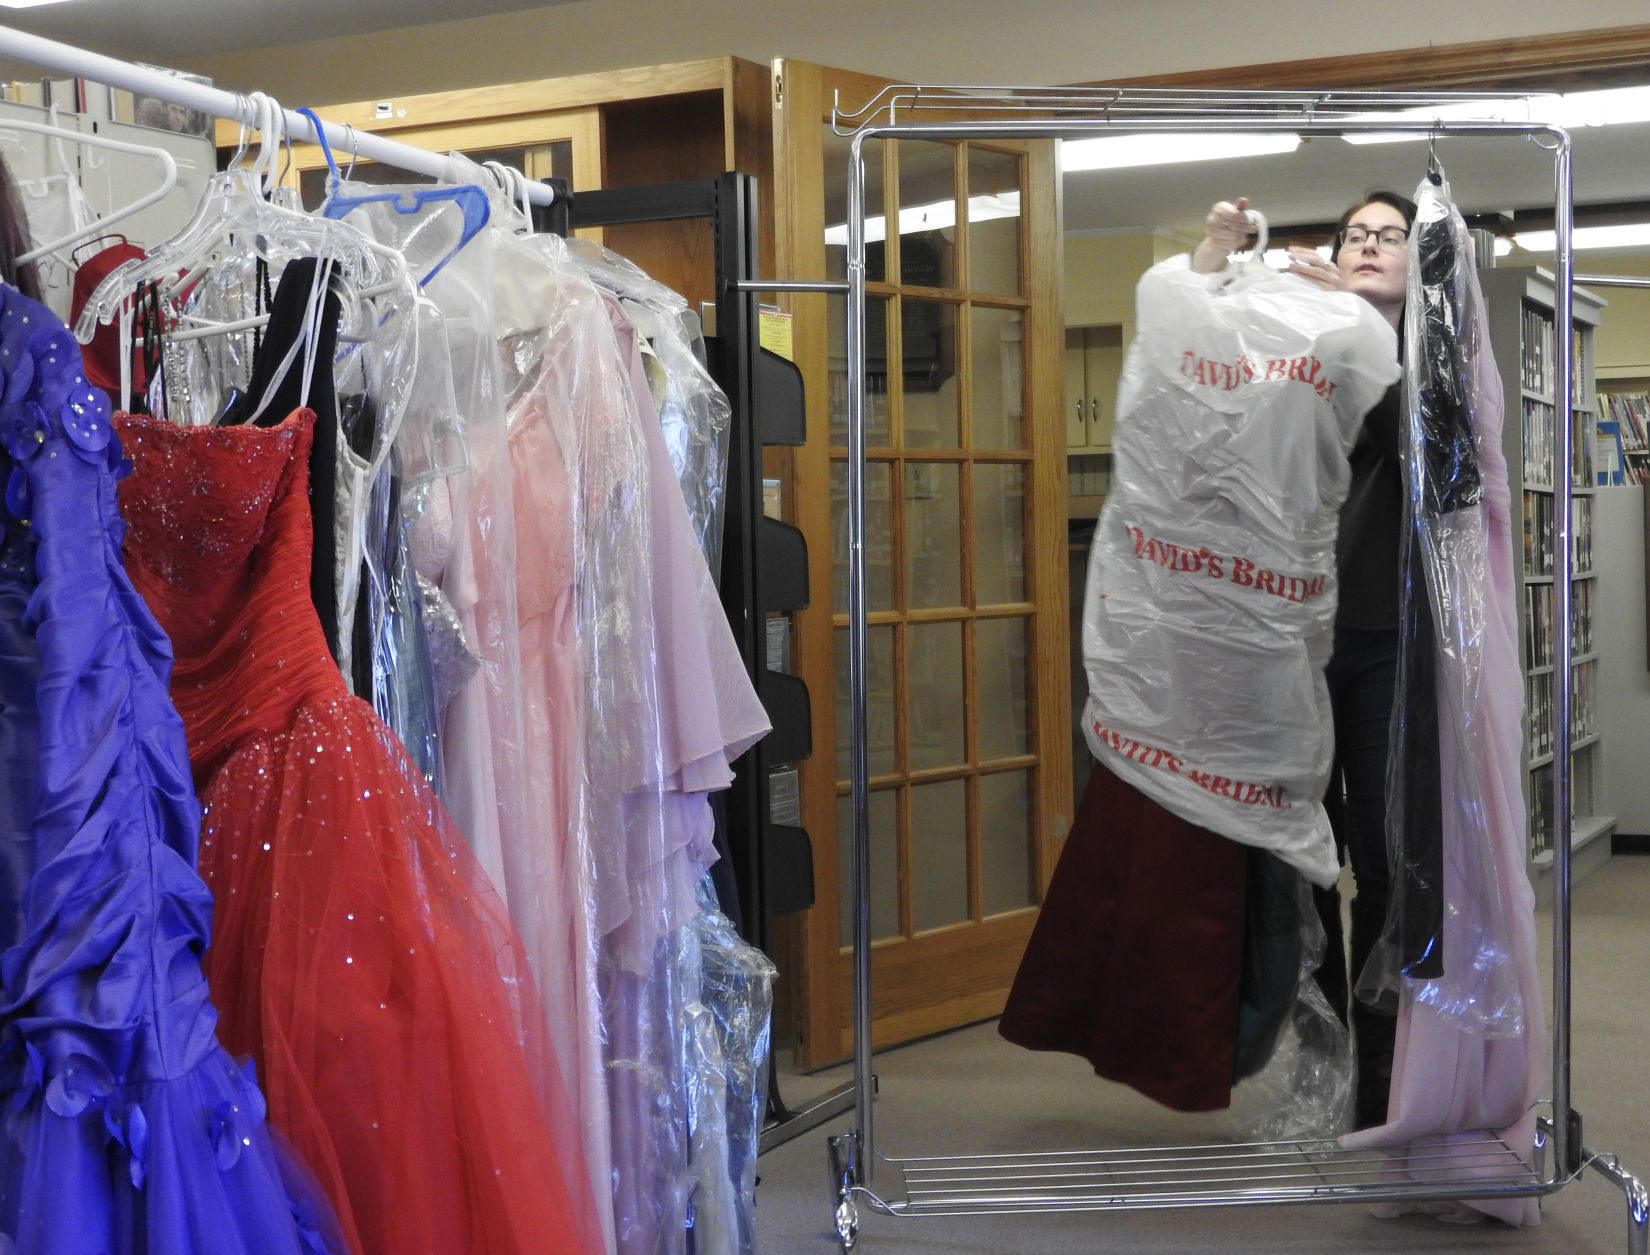 What's new at Argyle library? Prom dresses